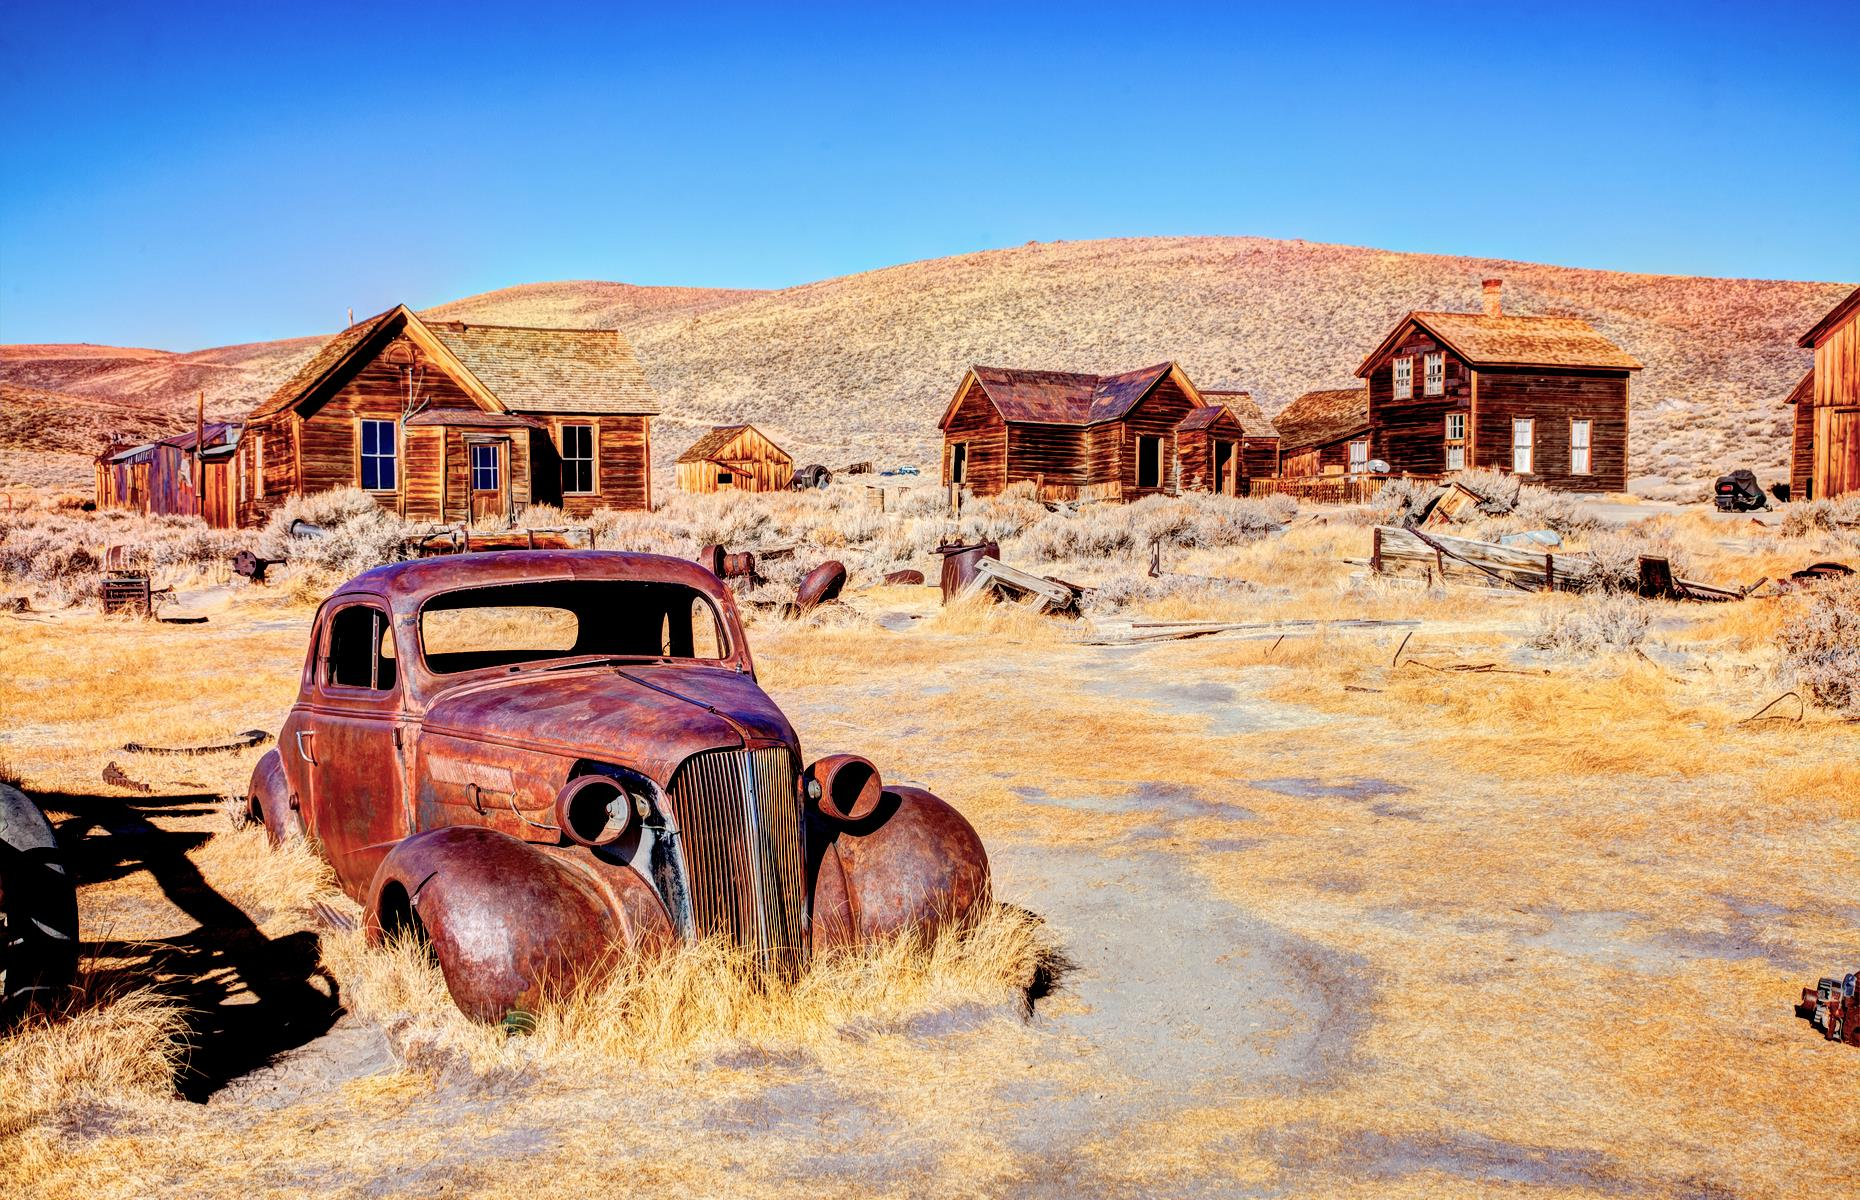 Slide 6 of 52: One of the best-known and most wonderfully preserved ghost towns in America, Bodie is tucked away in California's Eastern Sierra region. The town was at its peak between 1877 and 1882, when the mining industry was booming, and some 10,000 people called Bodie home. Now those residents are long gone, but around 200 ramshackle wooden buildings – including a saloon and a barber shop – give visitors a taste of the past. Entry to the historic buildings is currently suspended, but it's still possible to take a self-guided tour of Bodie's dusty, deserted streets.